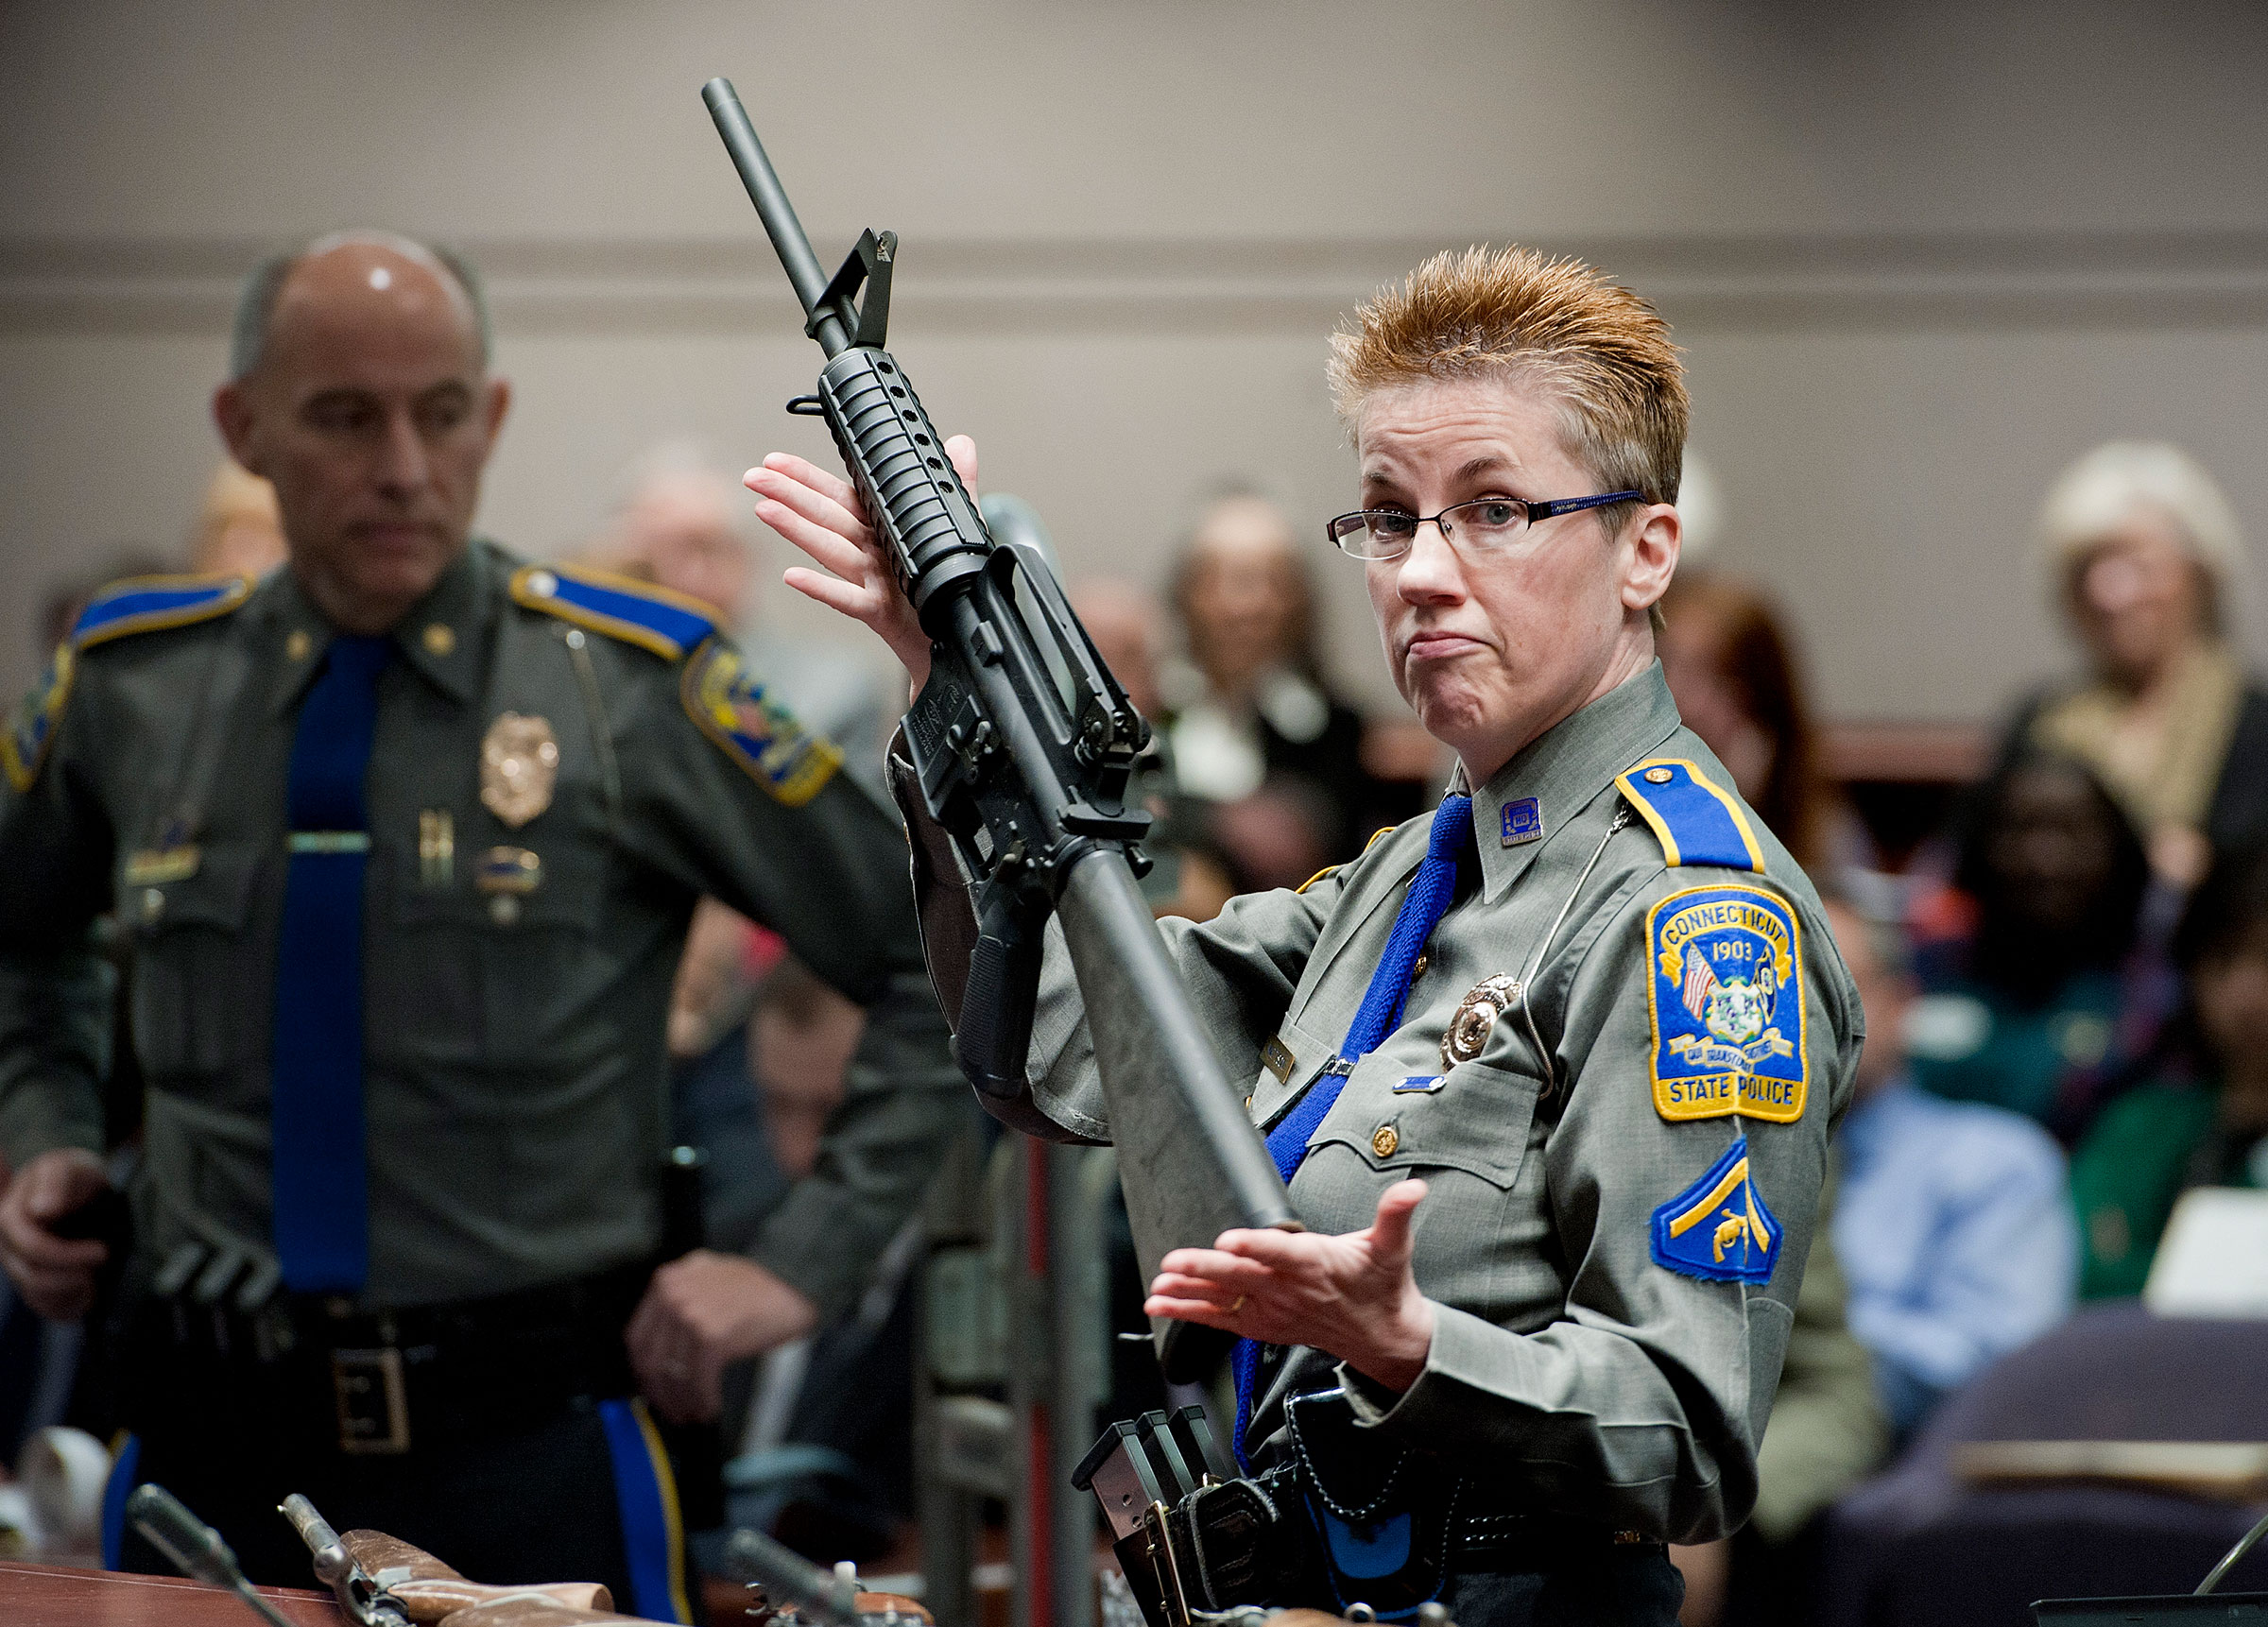 Firearms Training Unit Detective Barbara J. Mattson of the Connecticut State Police holds up a Bushmaster AR-15 rifle, the make and model of gun used in the 2012 Sandy Hook shooting, for a demonstration during a hearing of a legislative subcommittee reviewing gun laws, in Hartford, Conn., on Jan. 28, 2013.